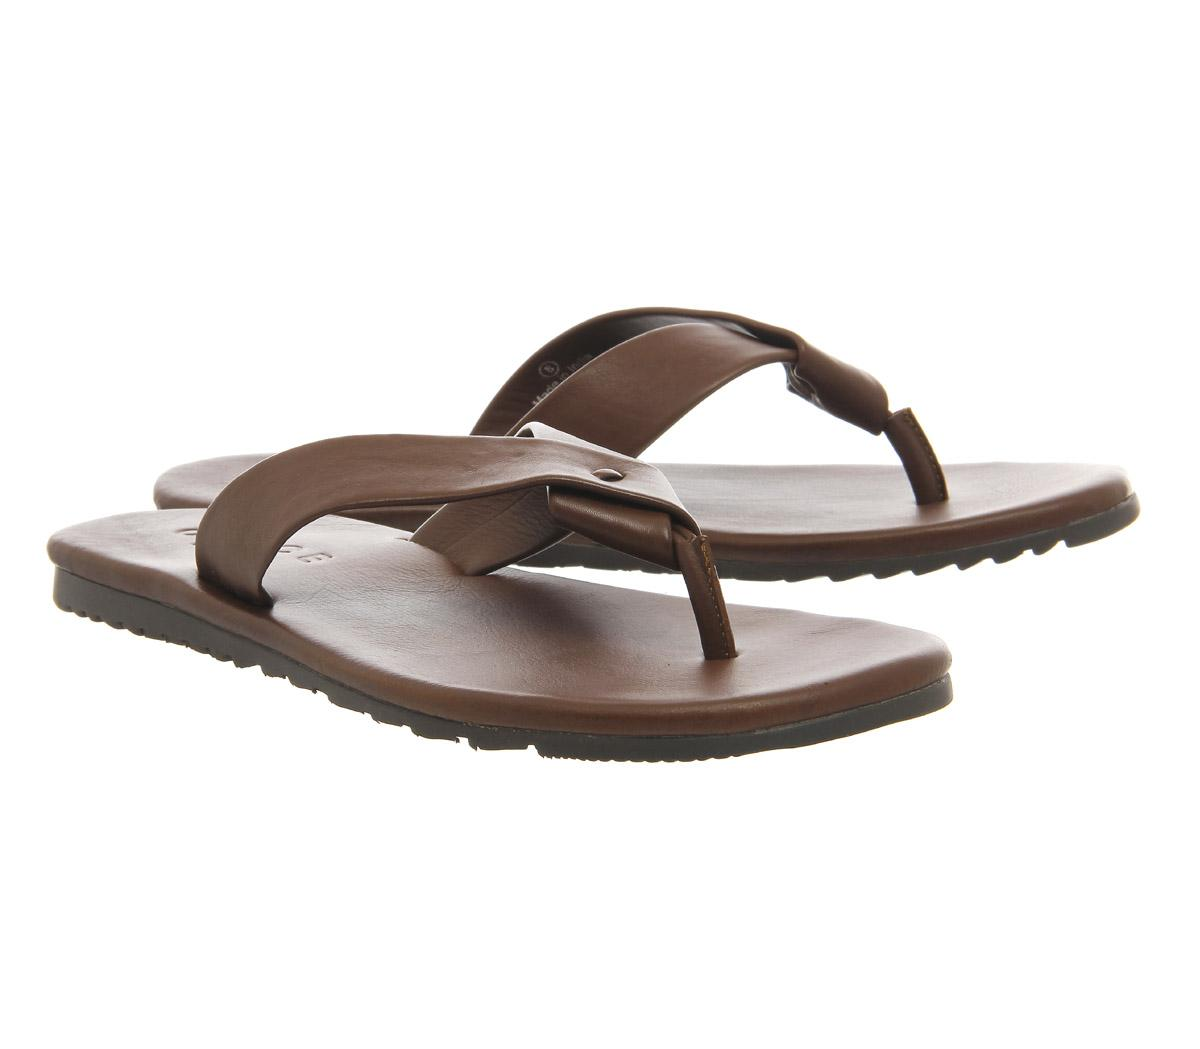 0b5e310a1aae Lyst - Office Bbq Toe Thong Sandals in Brown for Men